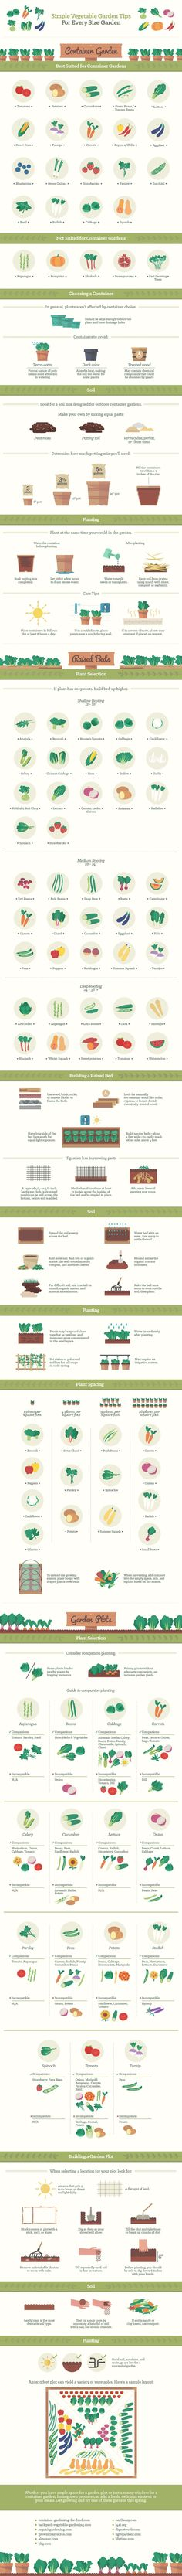 Simple Vegetable Gardening Basics for Every Size Garden